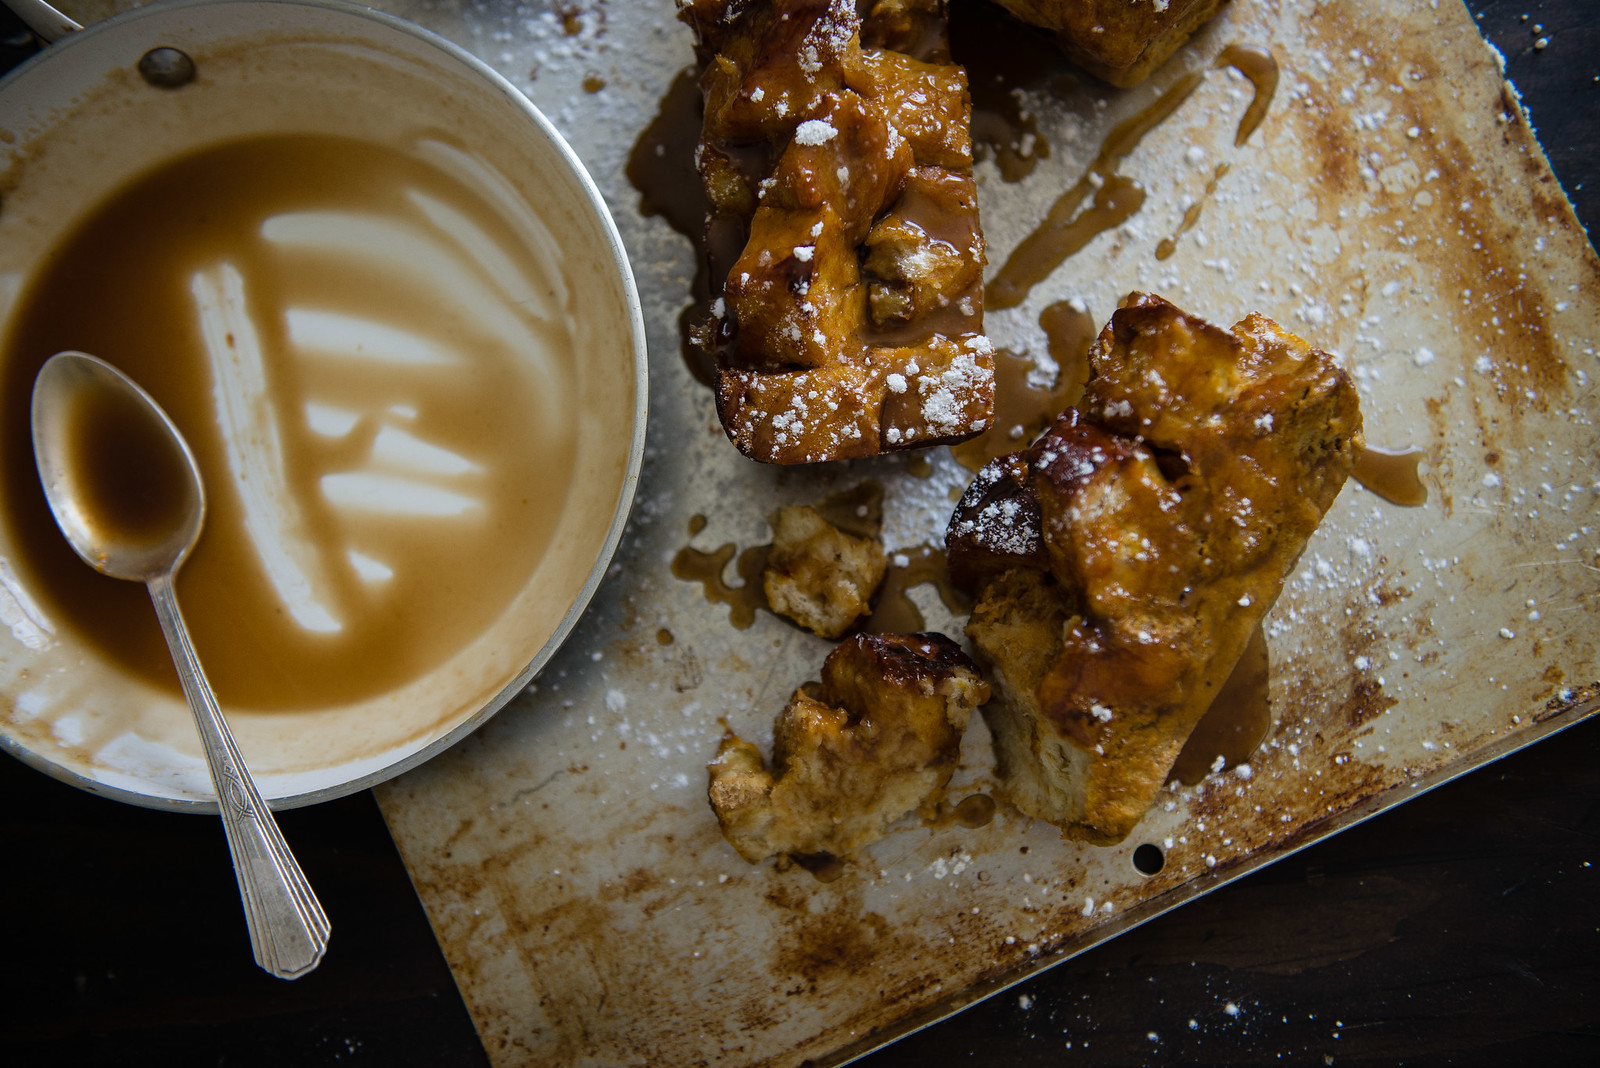 kabocha & maple caramel baked french toast | two red bowls